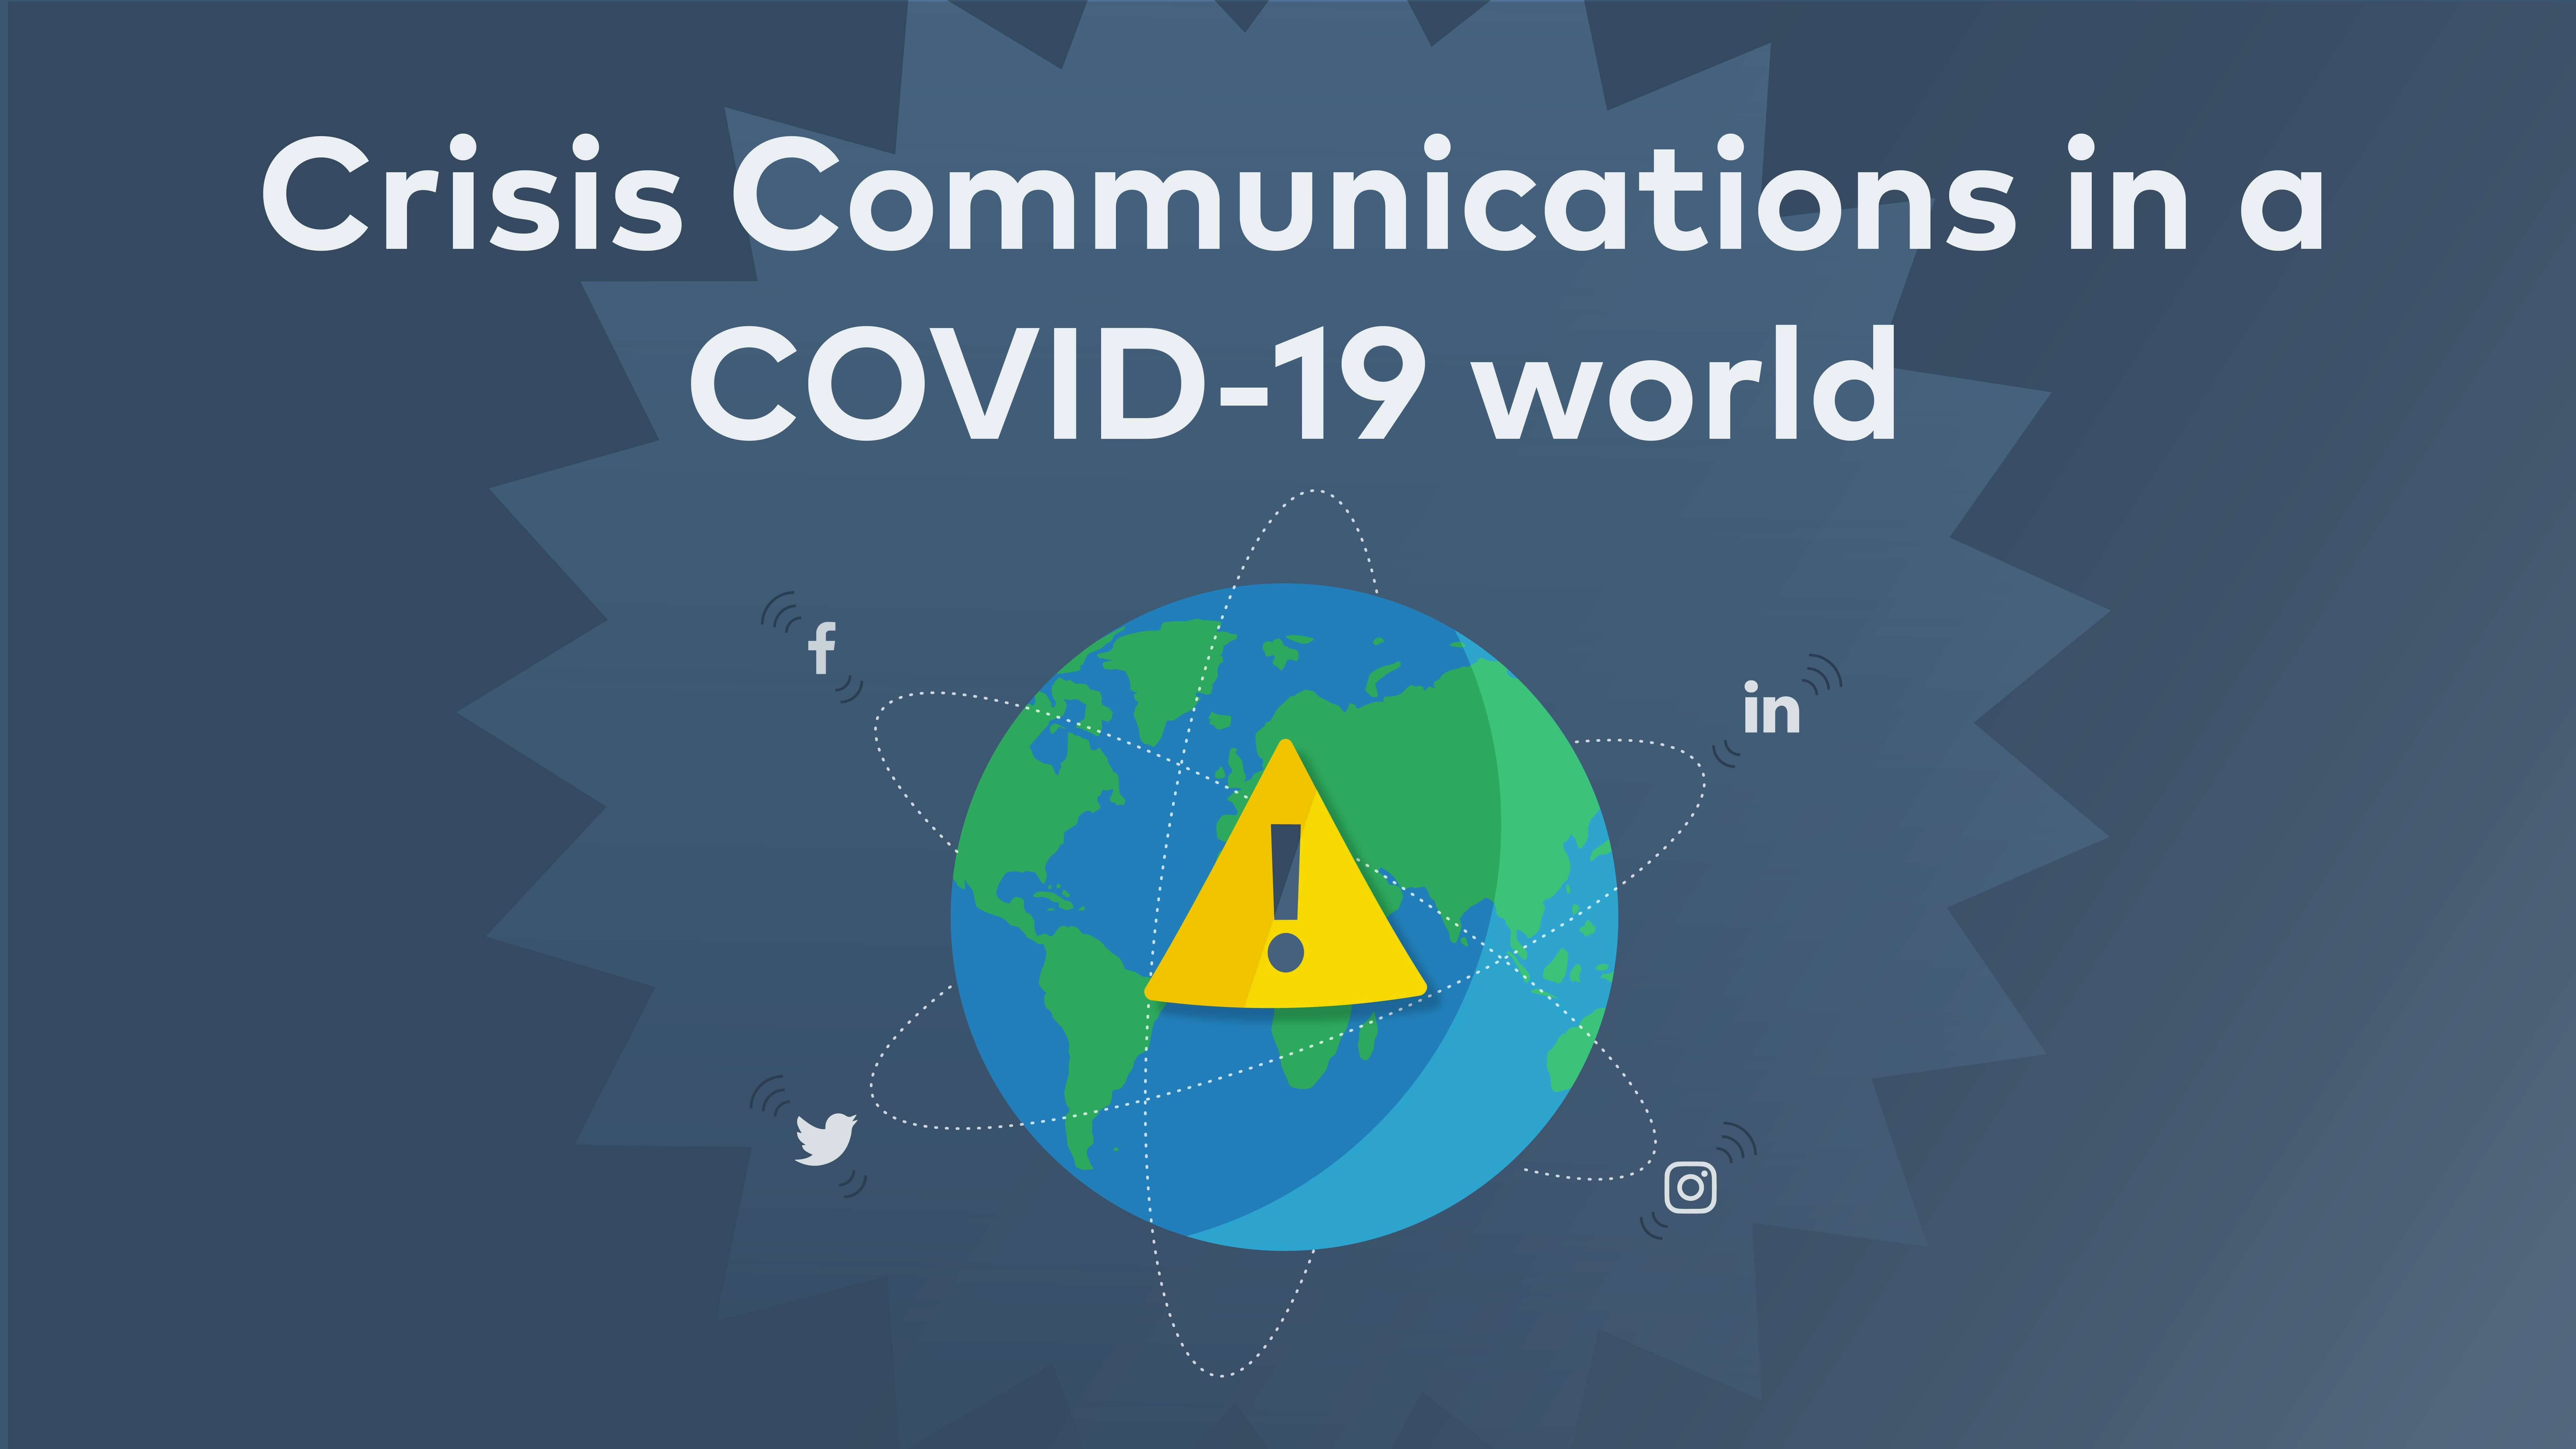 Crisis Communications in a COVID-19